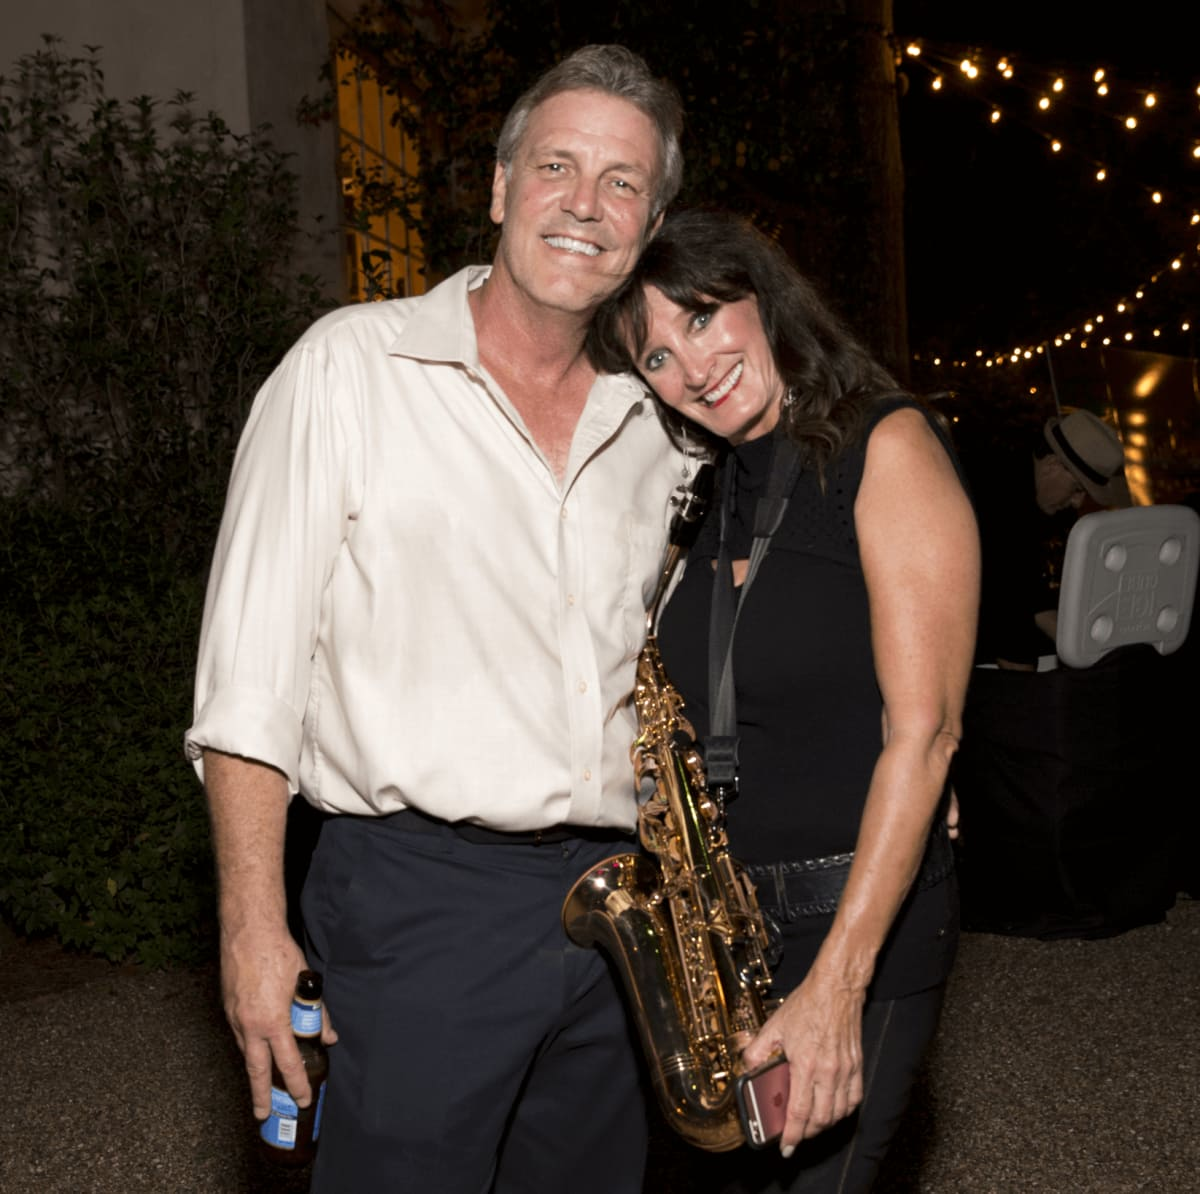 Kraig Williamson, Colleen Holthouse at Bayou Preservation Association Gala